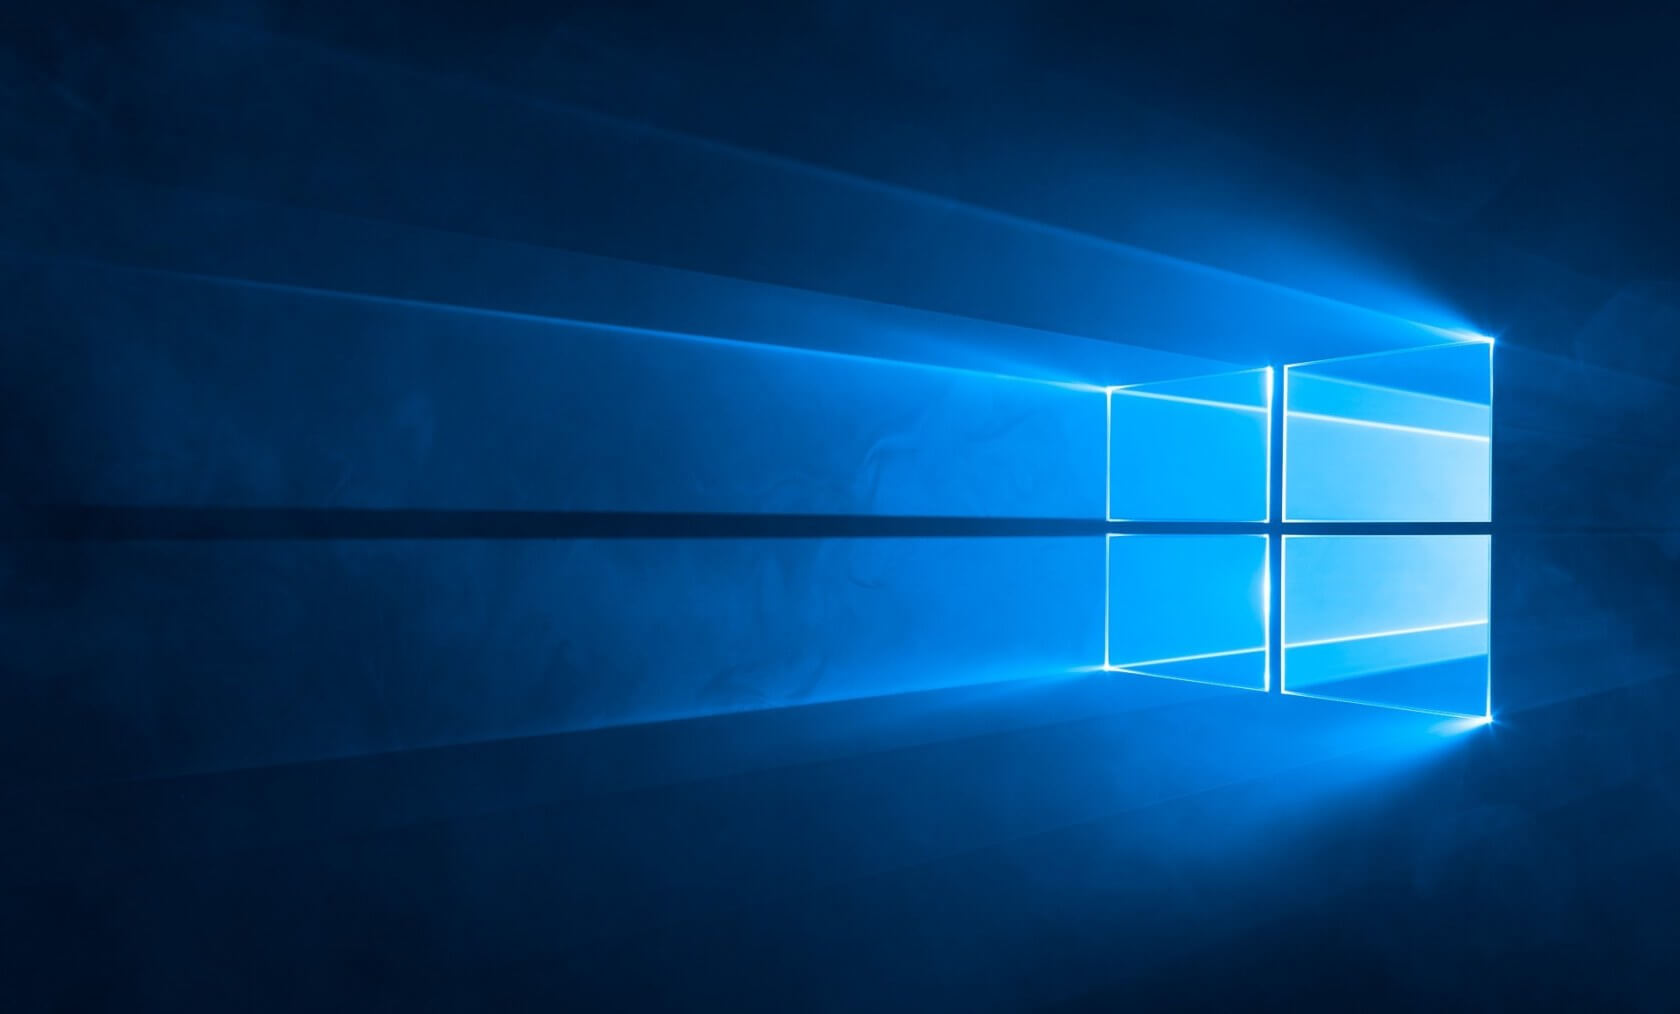 Microsoft's 'secured-core PC initiative' aims to protect Windows 10 machines from firmware attacks